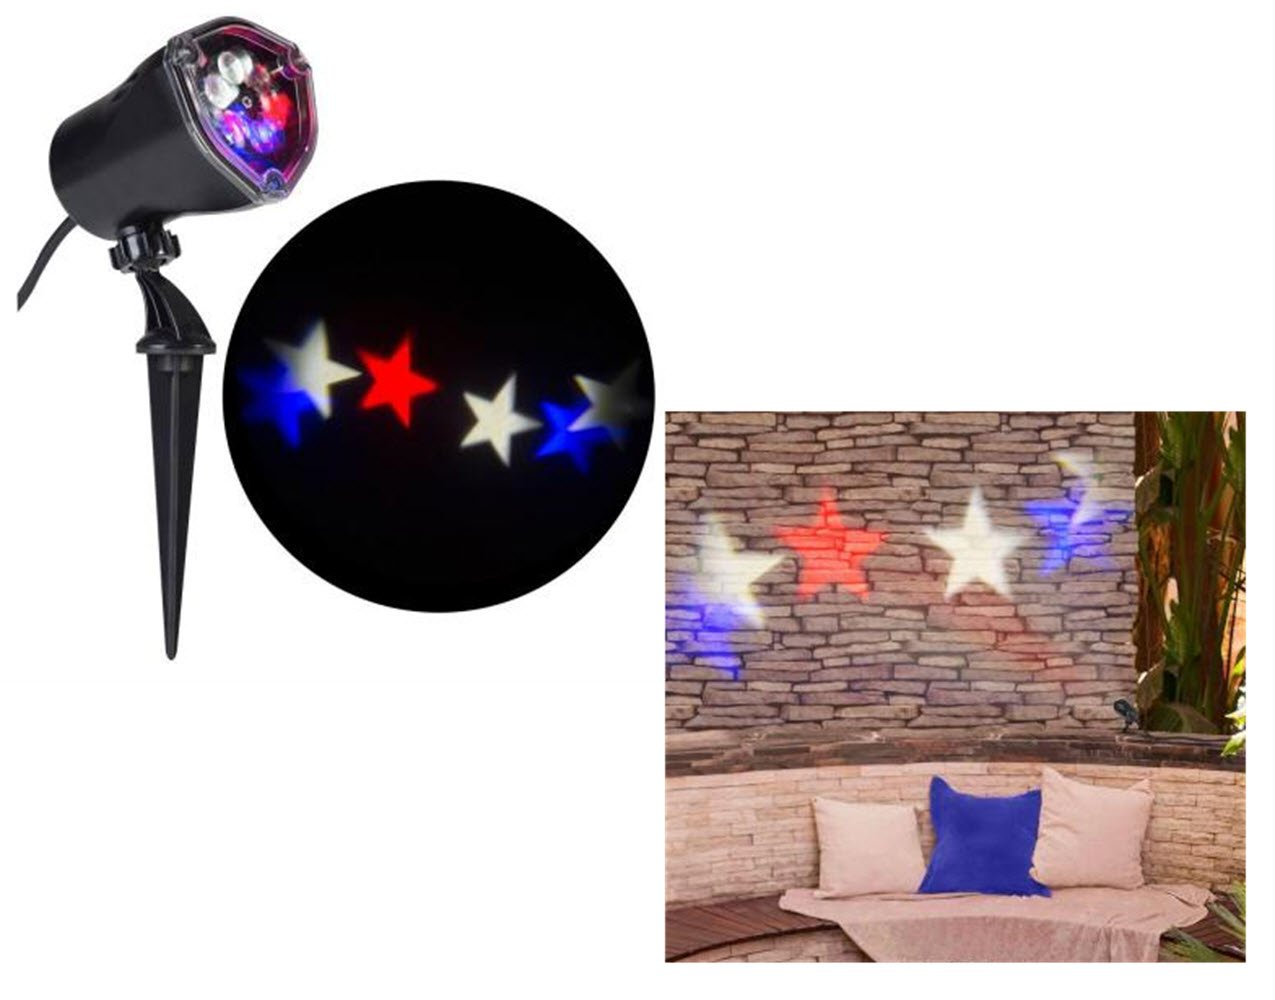 Americana Patriotic Red White & Blue Stars Whirl a Motion LED Projector Light for July 4th!